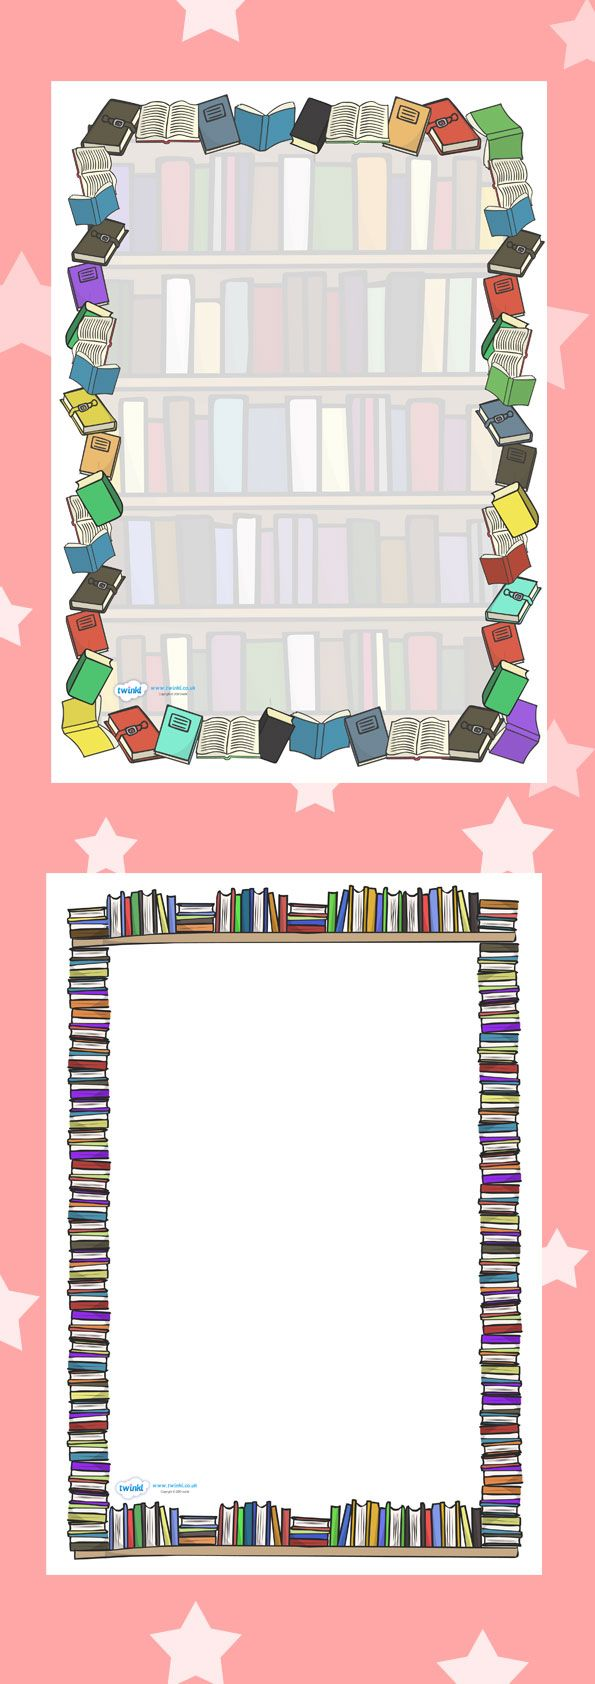 book review writing frame